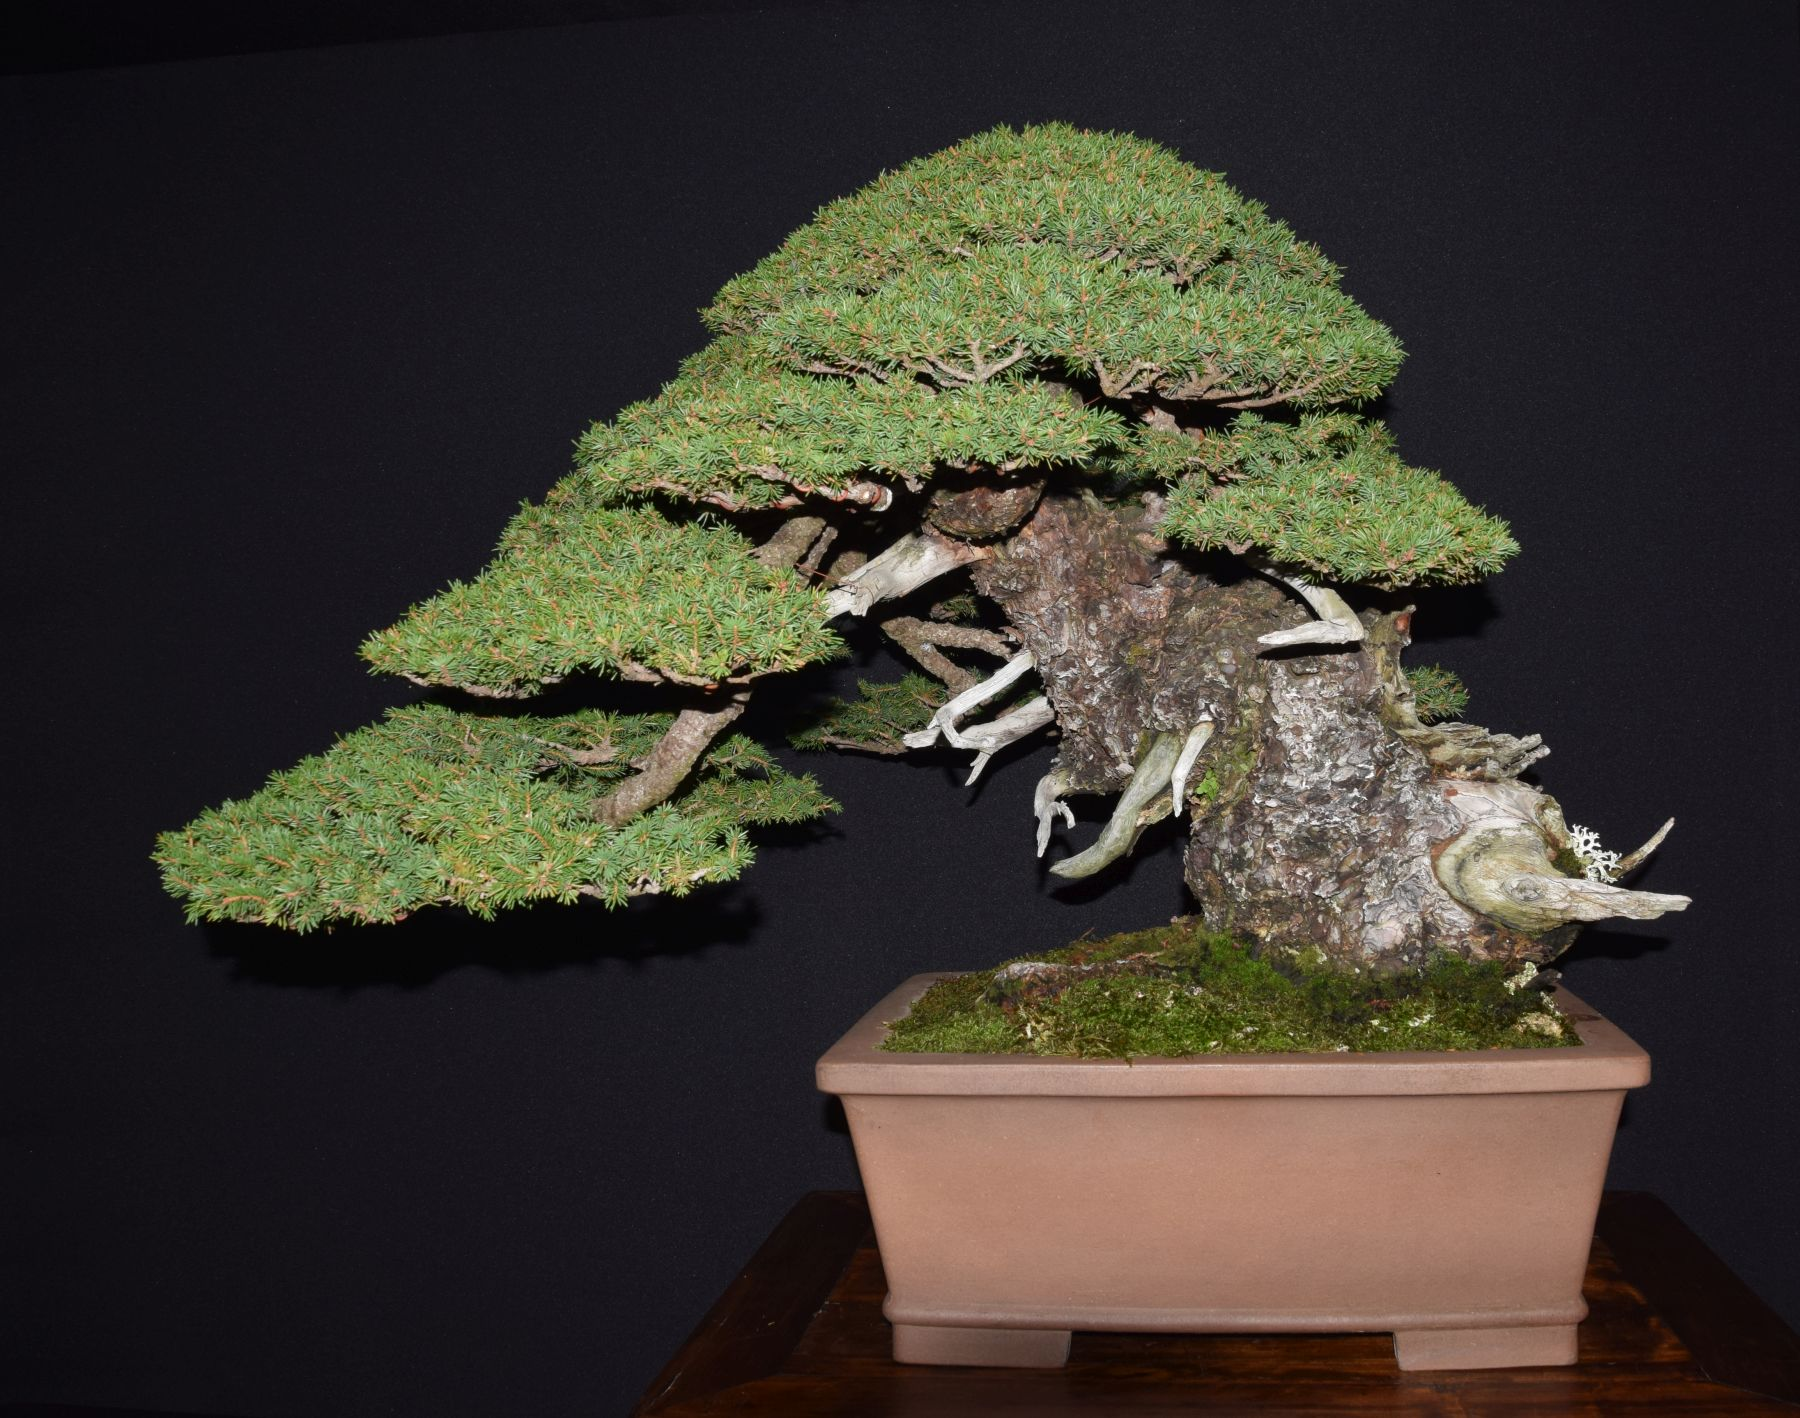 bonsai-museum-luis-vallejo-010